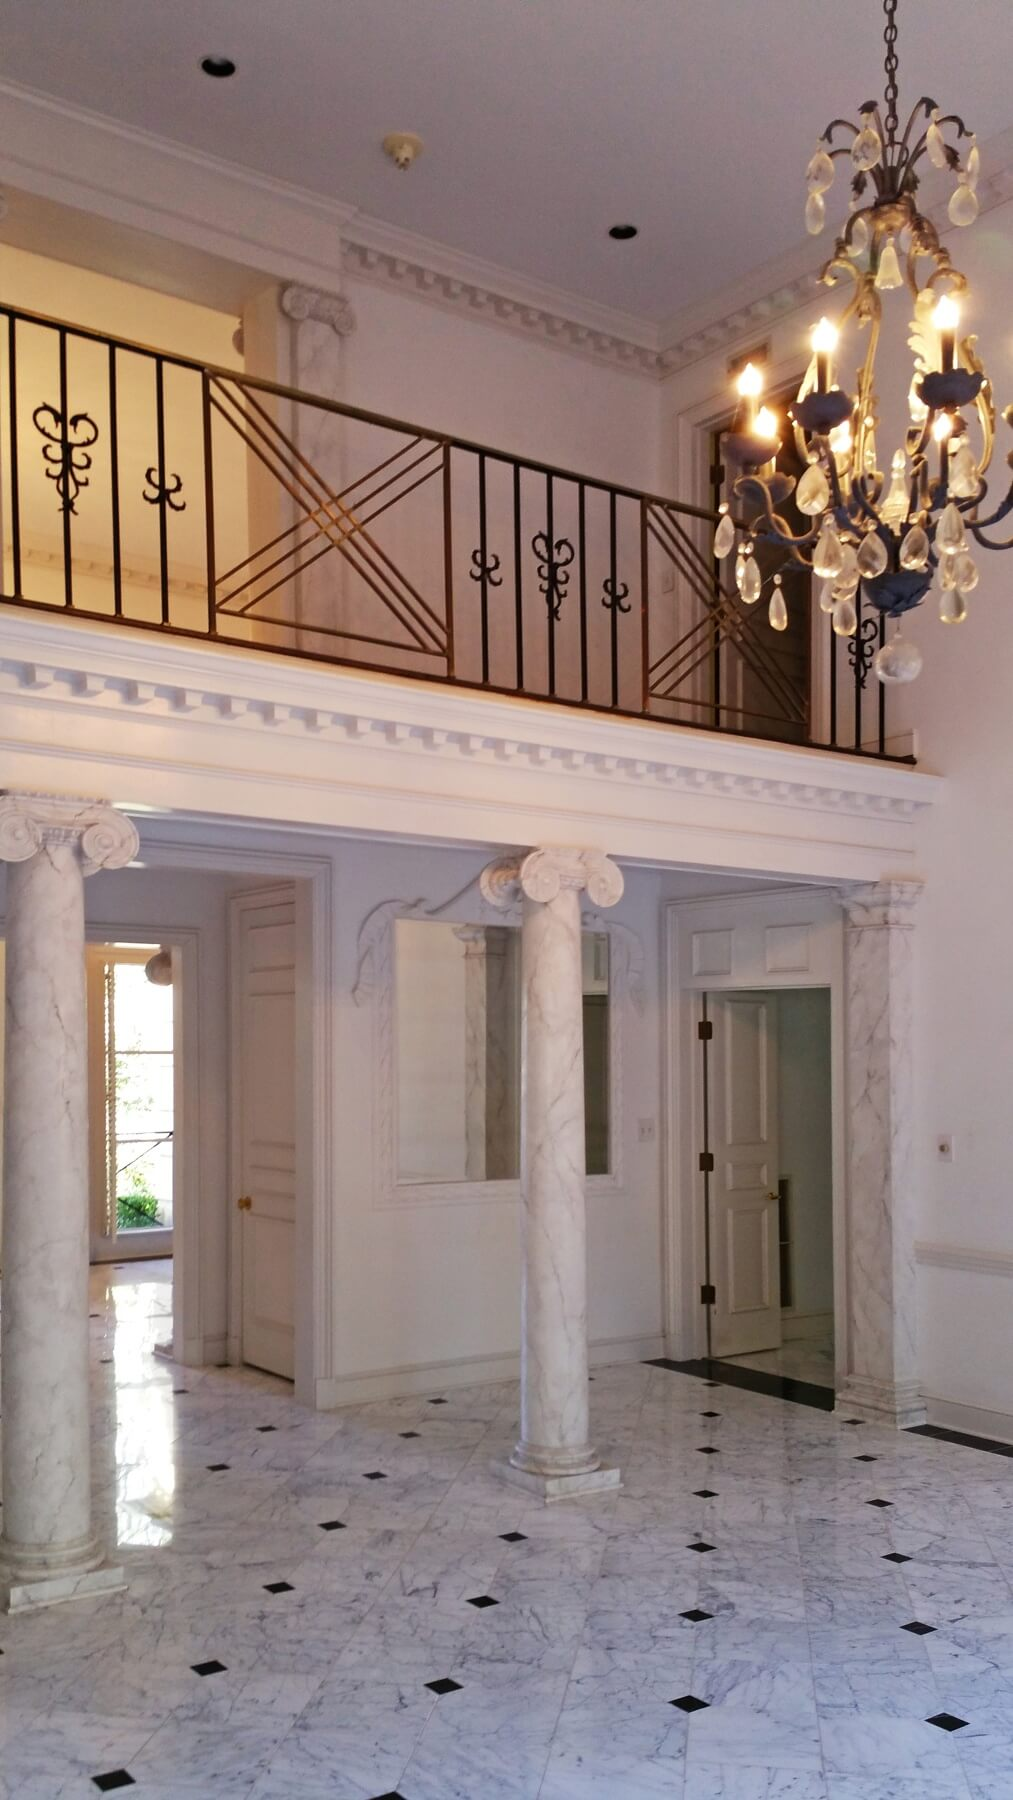 Before: A view of the dining room looking into the light-filled foyer